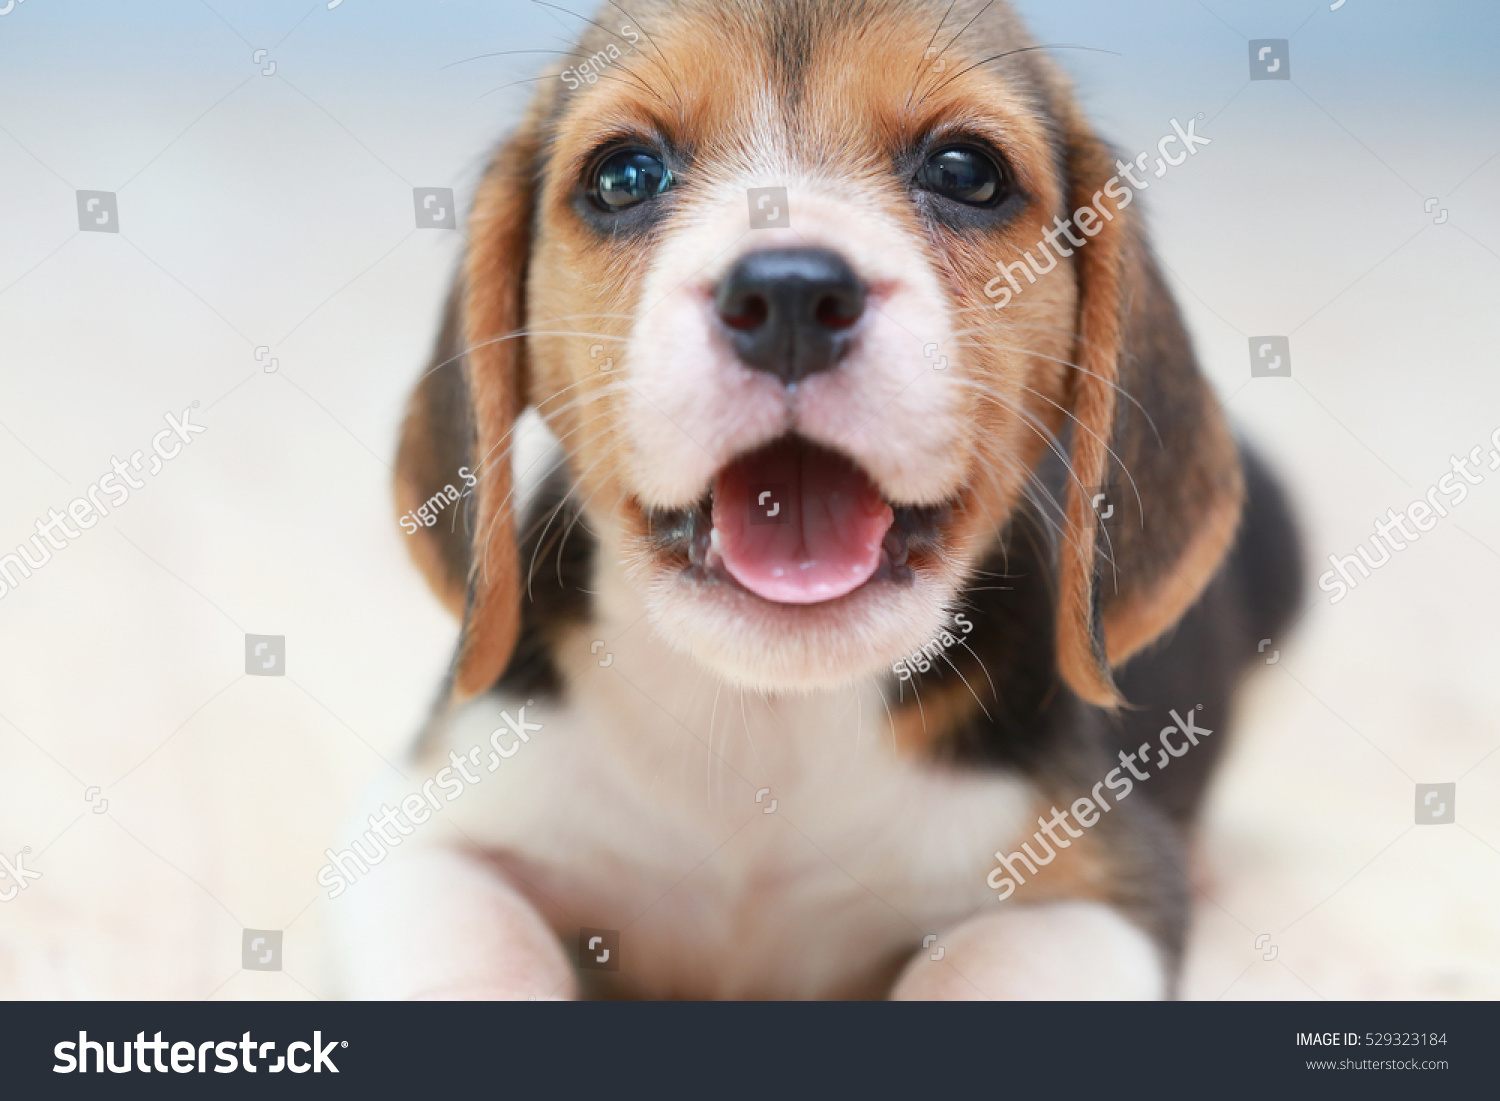 Small cute beagle puppy dog looking 529323184 shutterstock small cute beagle puppy dog looking up voltagebd Gallery